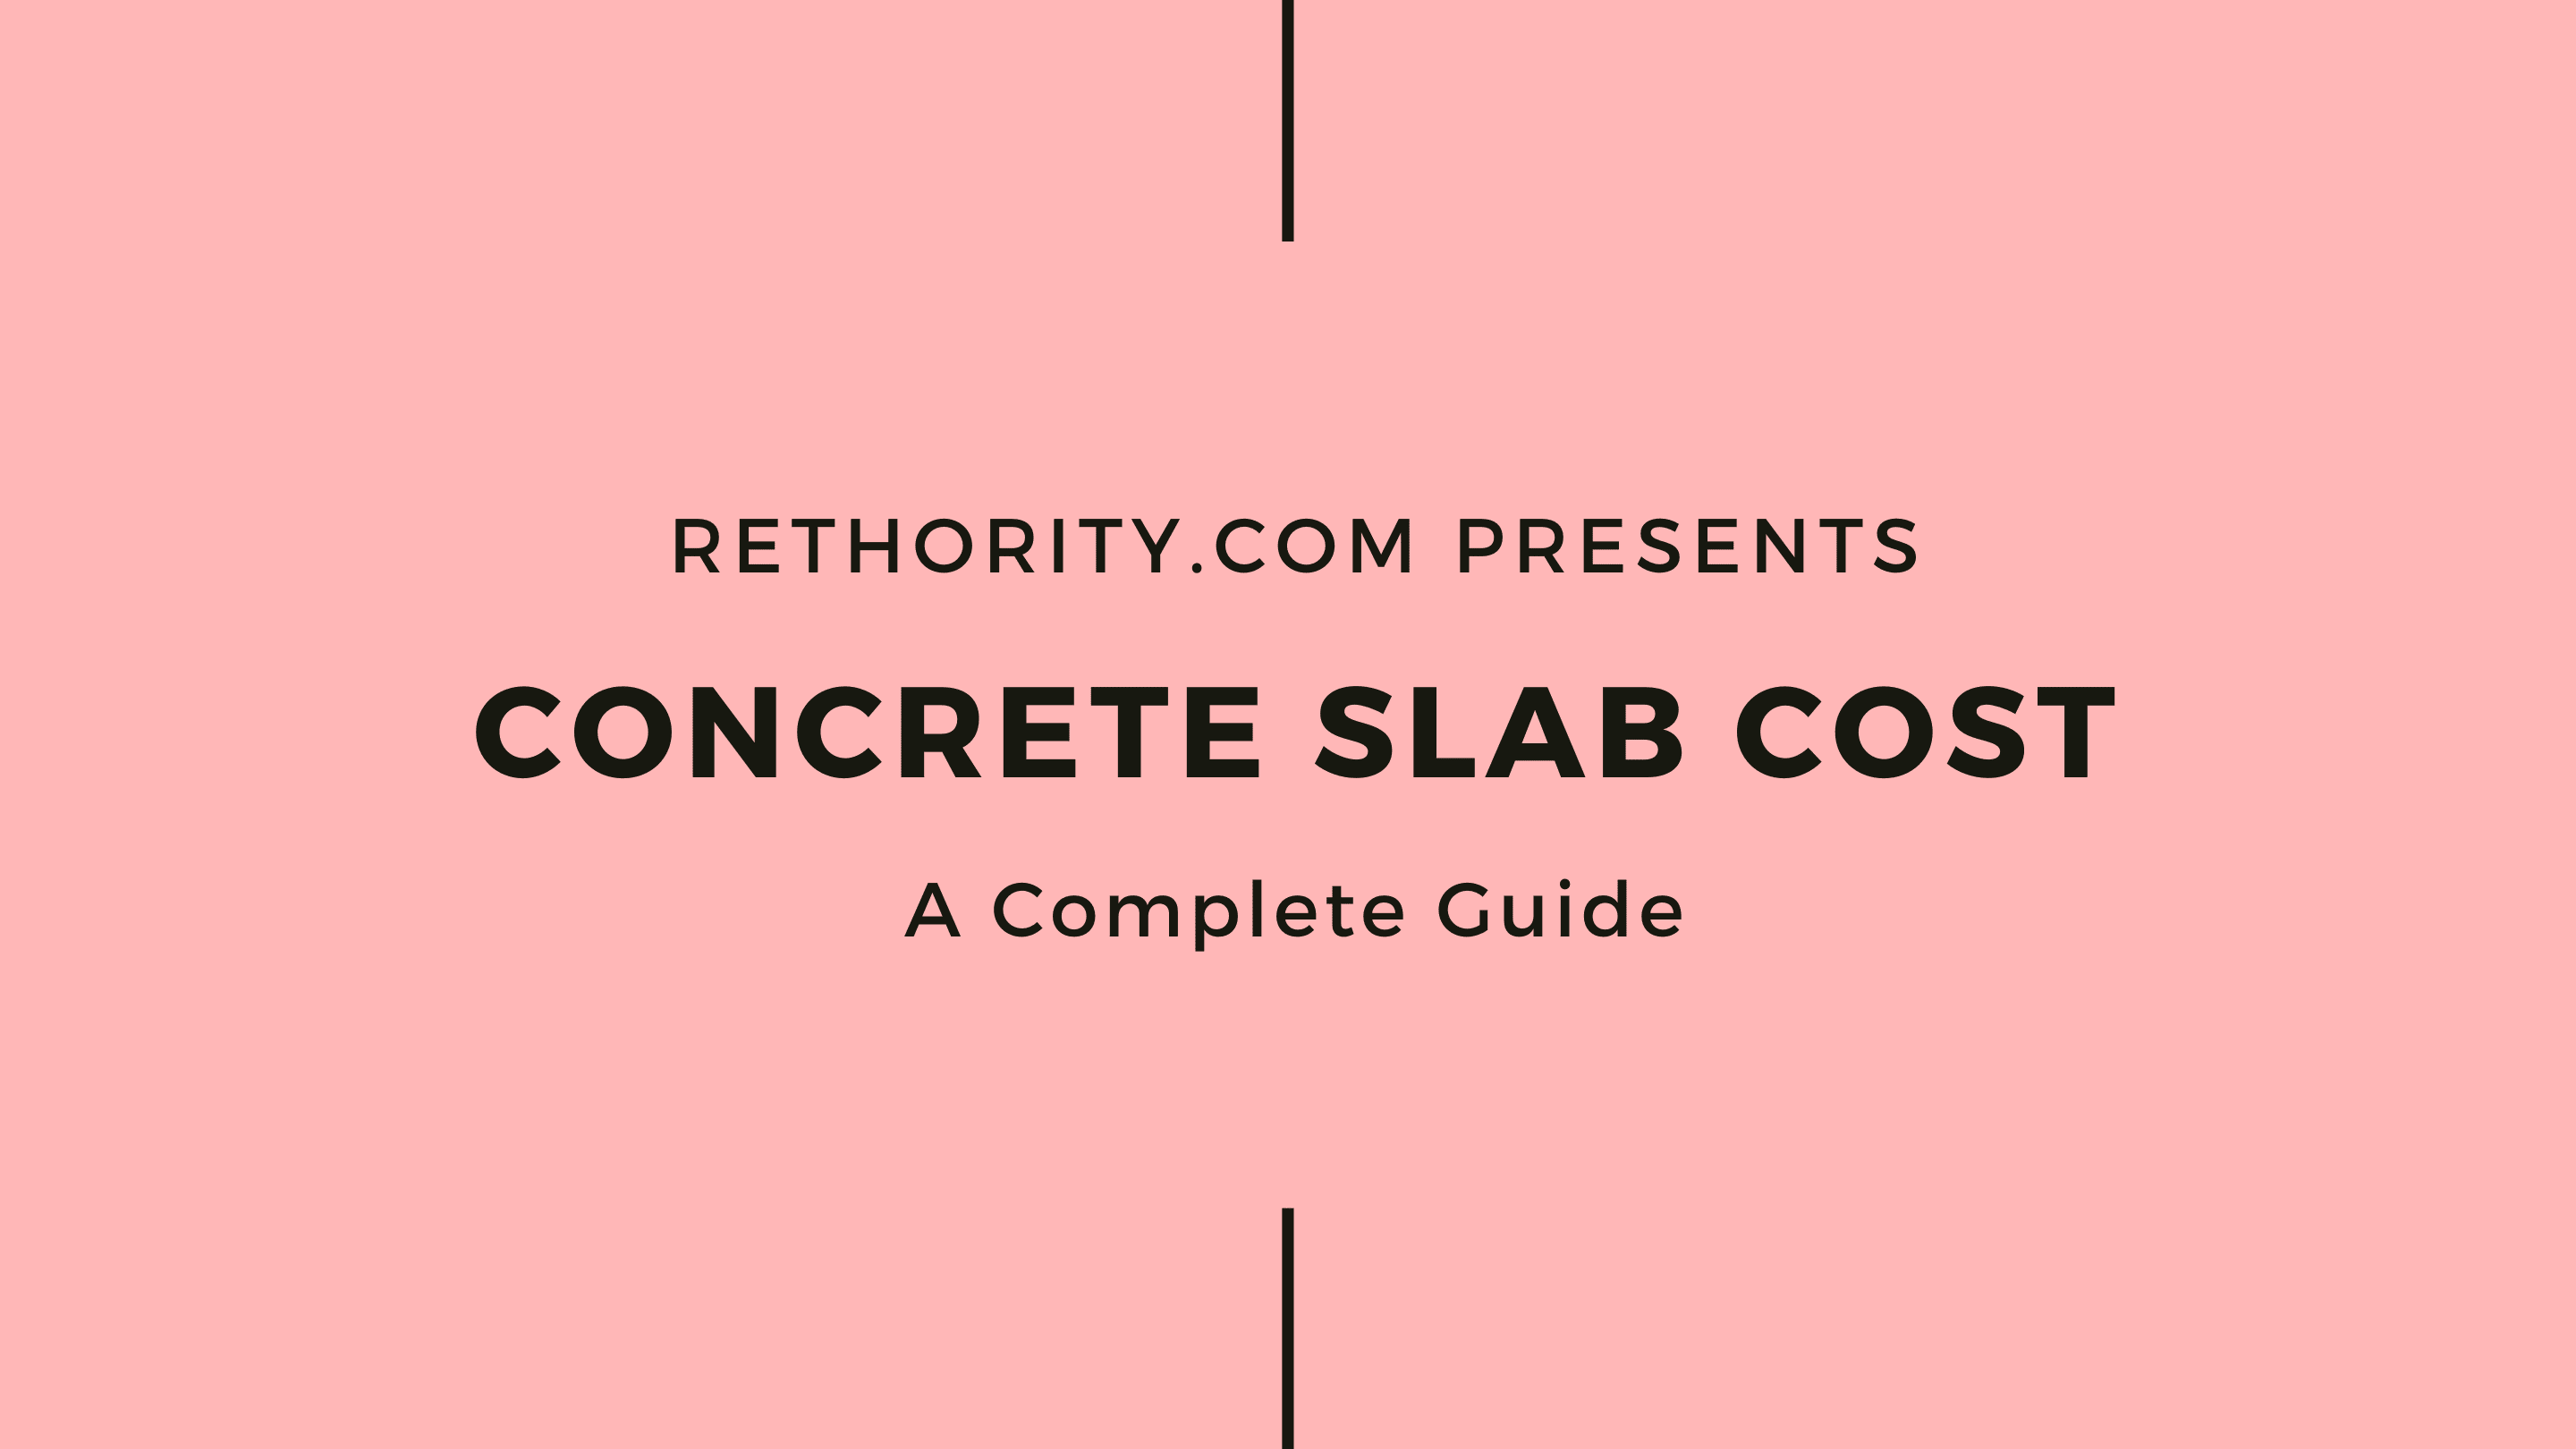 Concrete slab cost graphic against salmon background